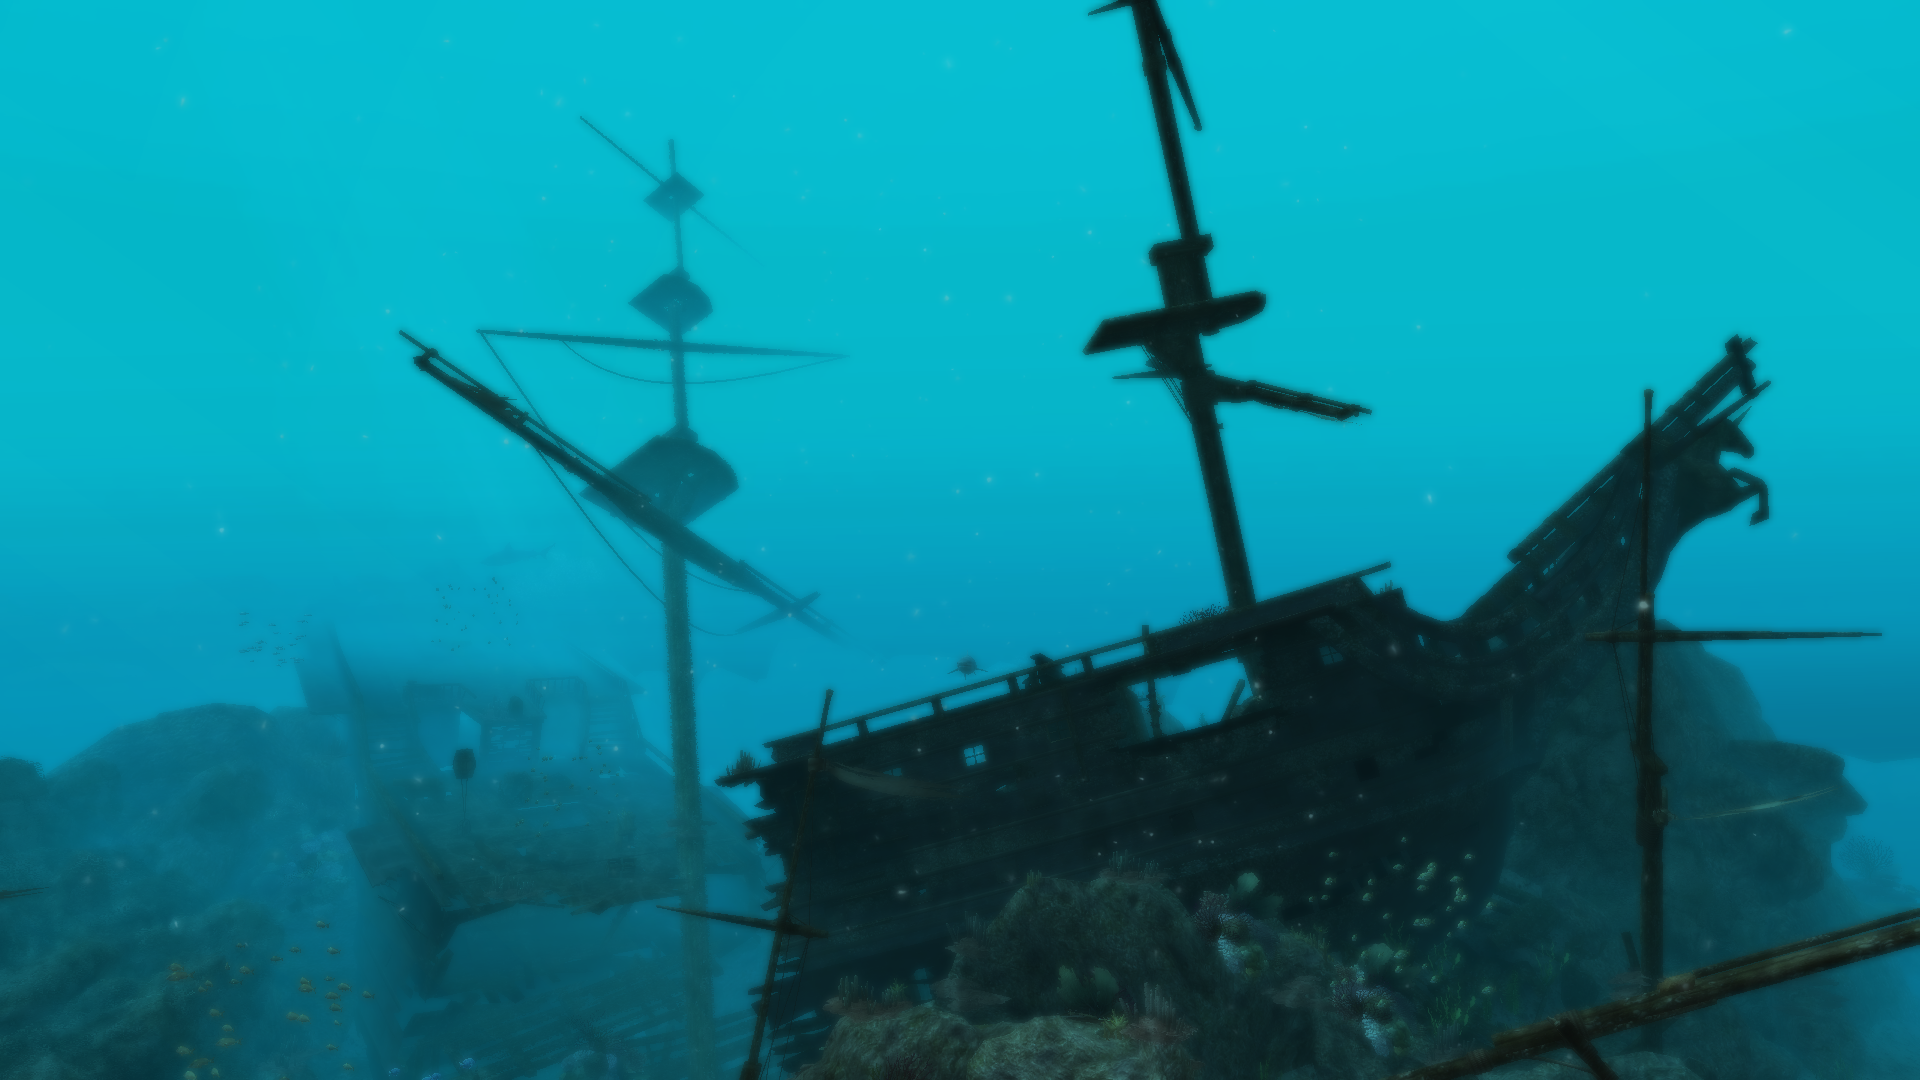 Shipwreck photo